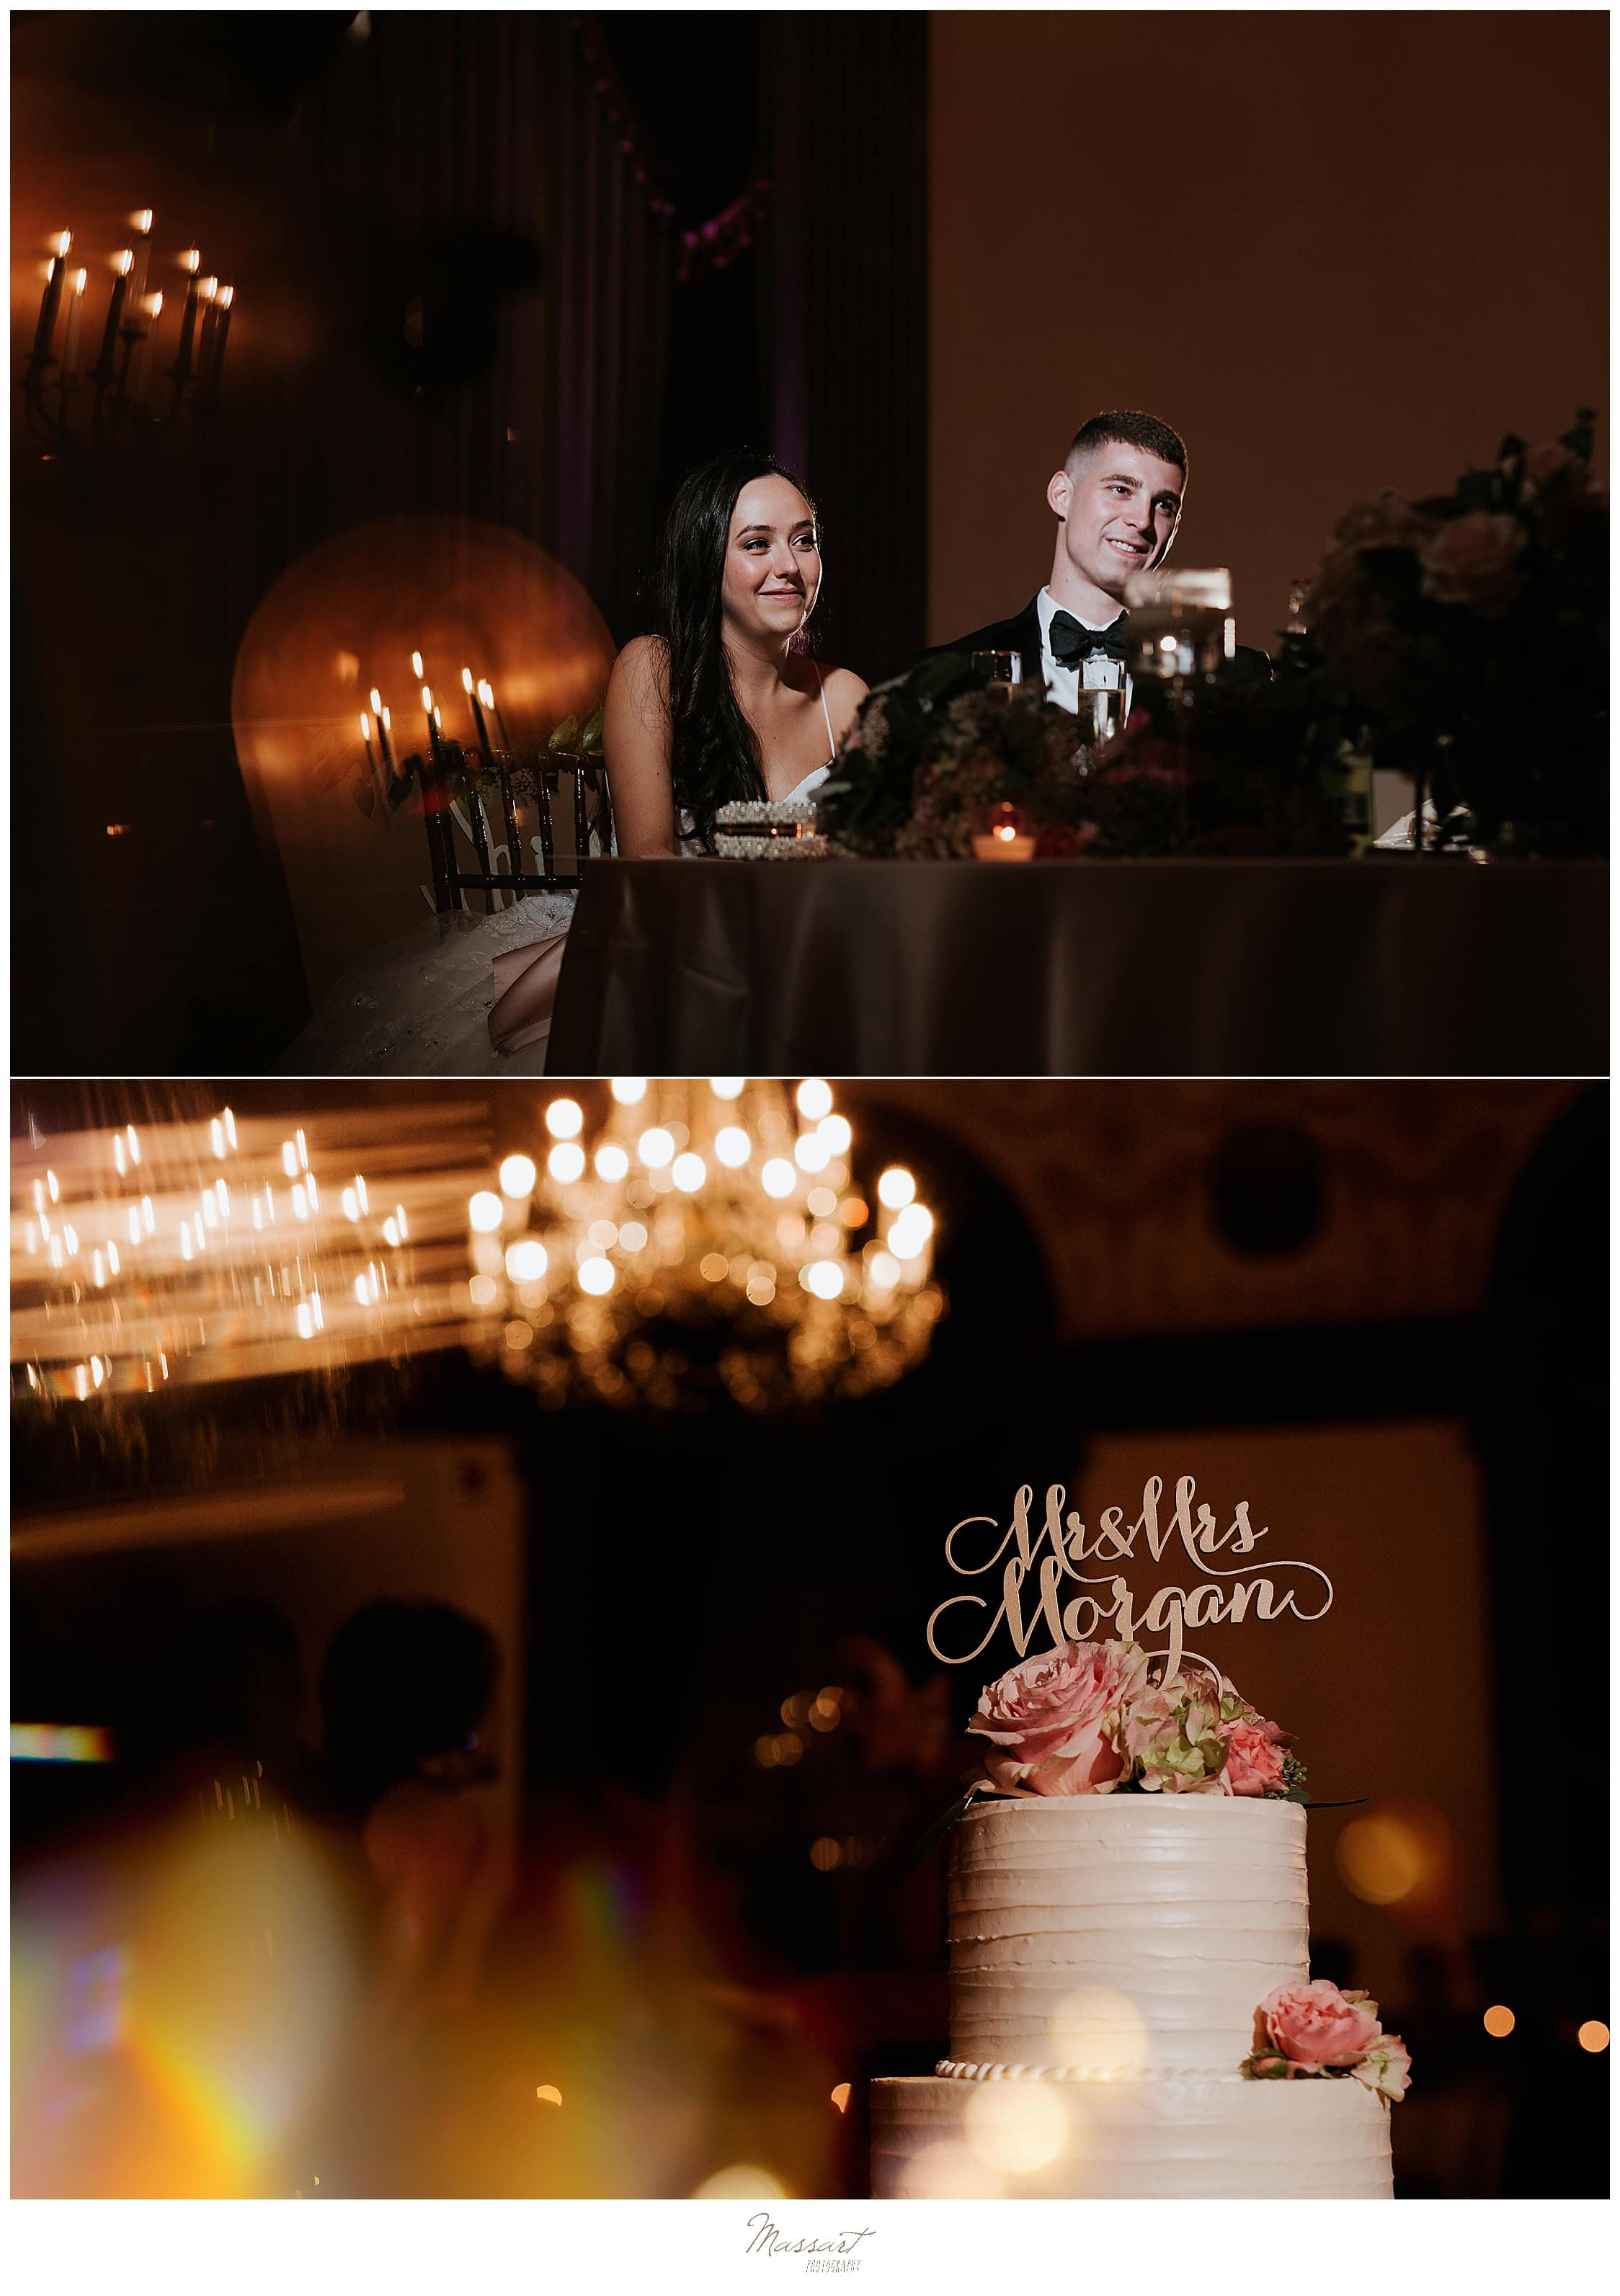 Classic Rhode Island wedding reception photographed by CT, MA, RI wedding photographers Massart Photography